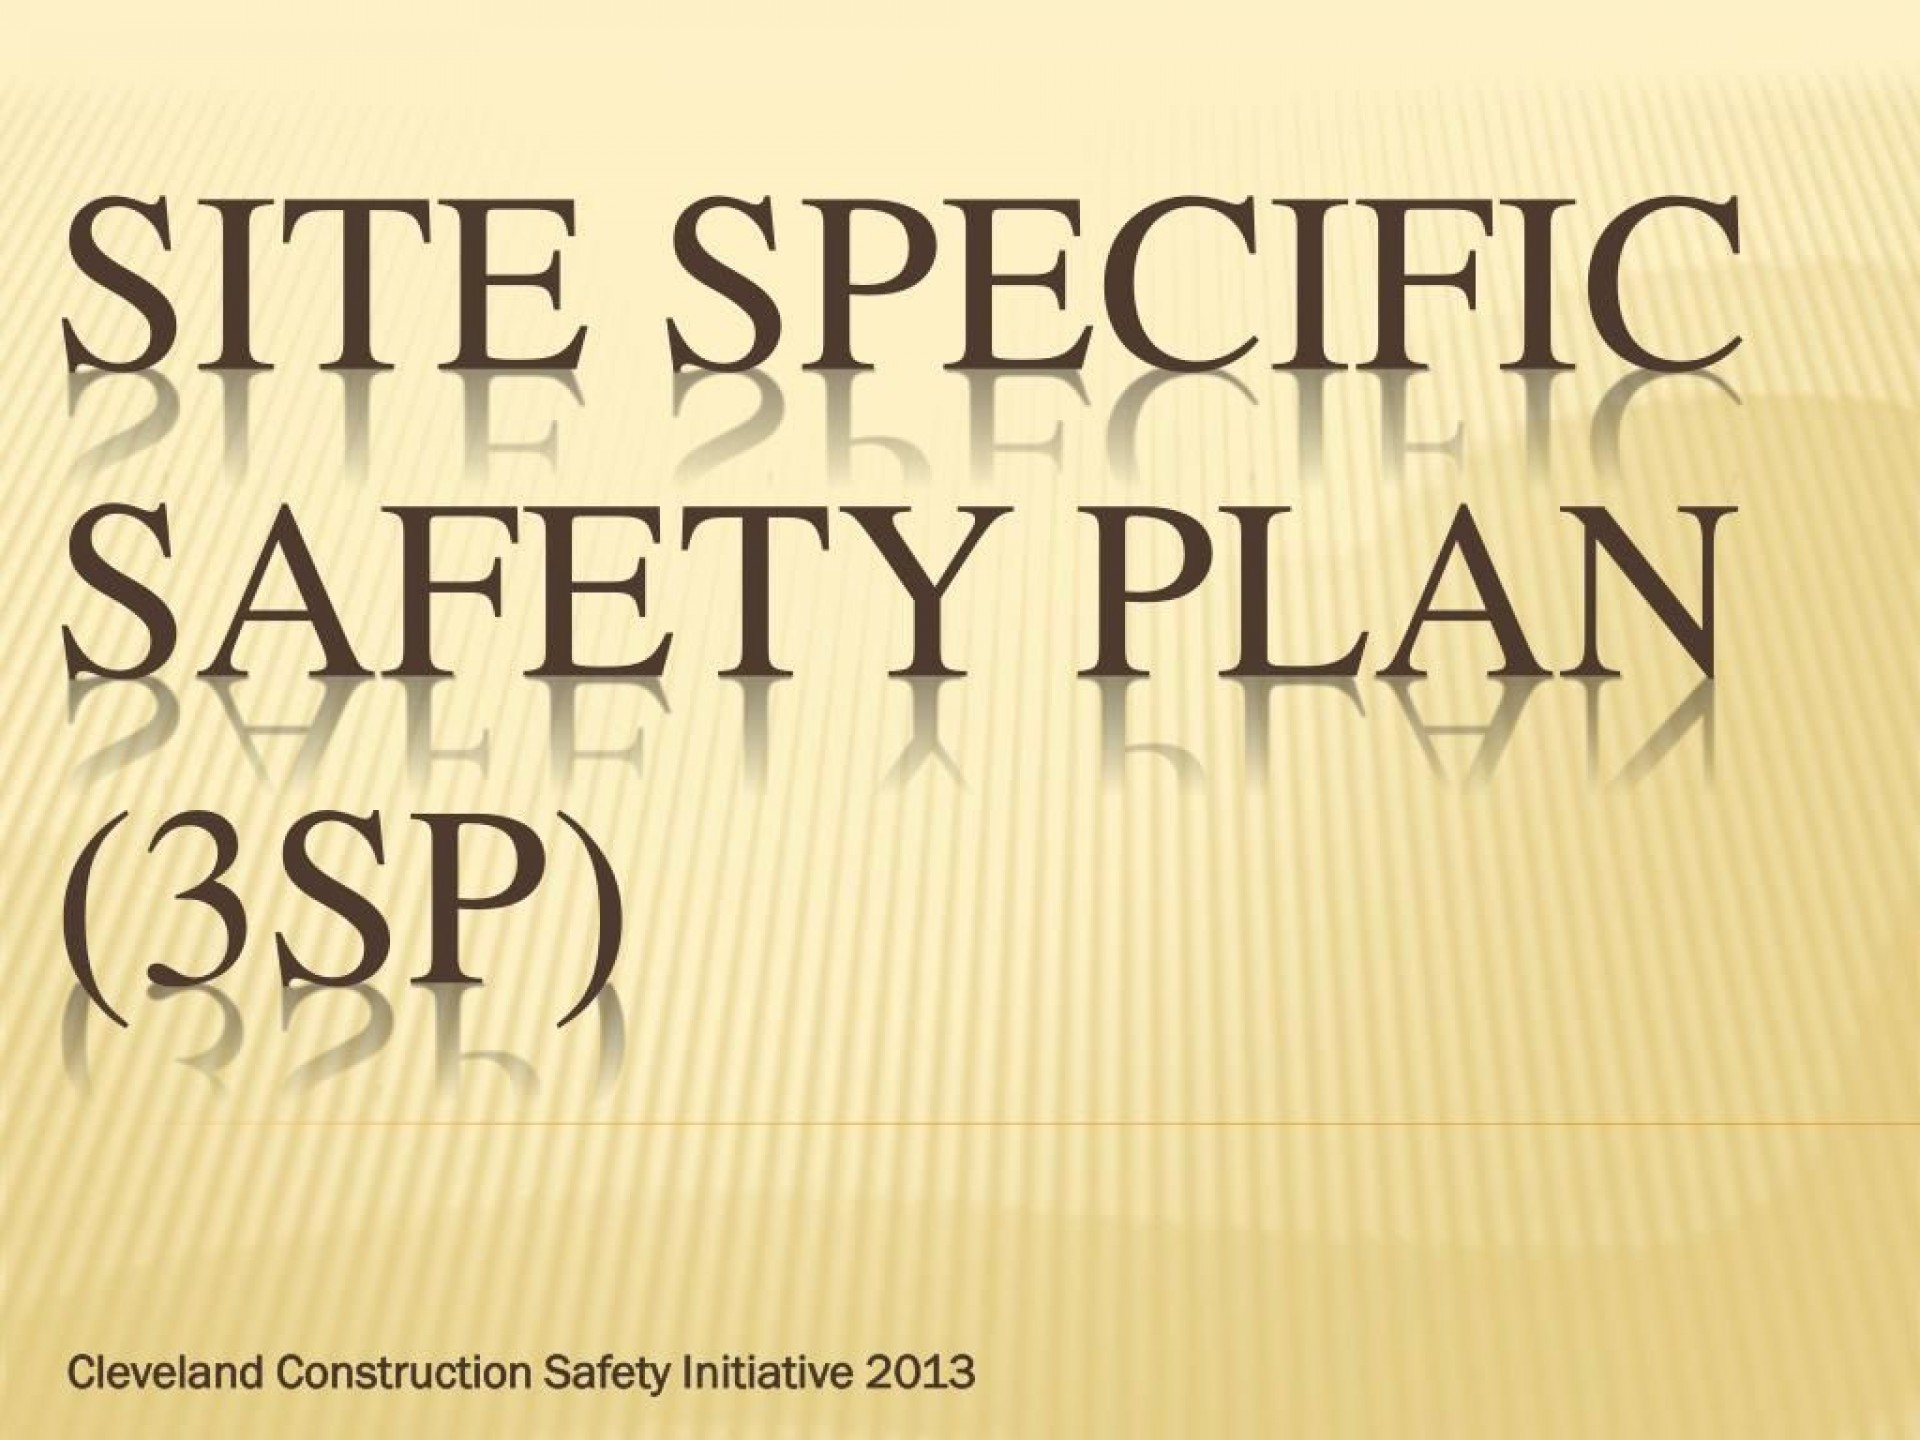 002 Fascinating Site Specific Safety Plan Template Osha Idea 1920